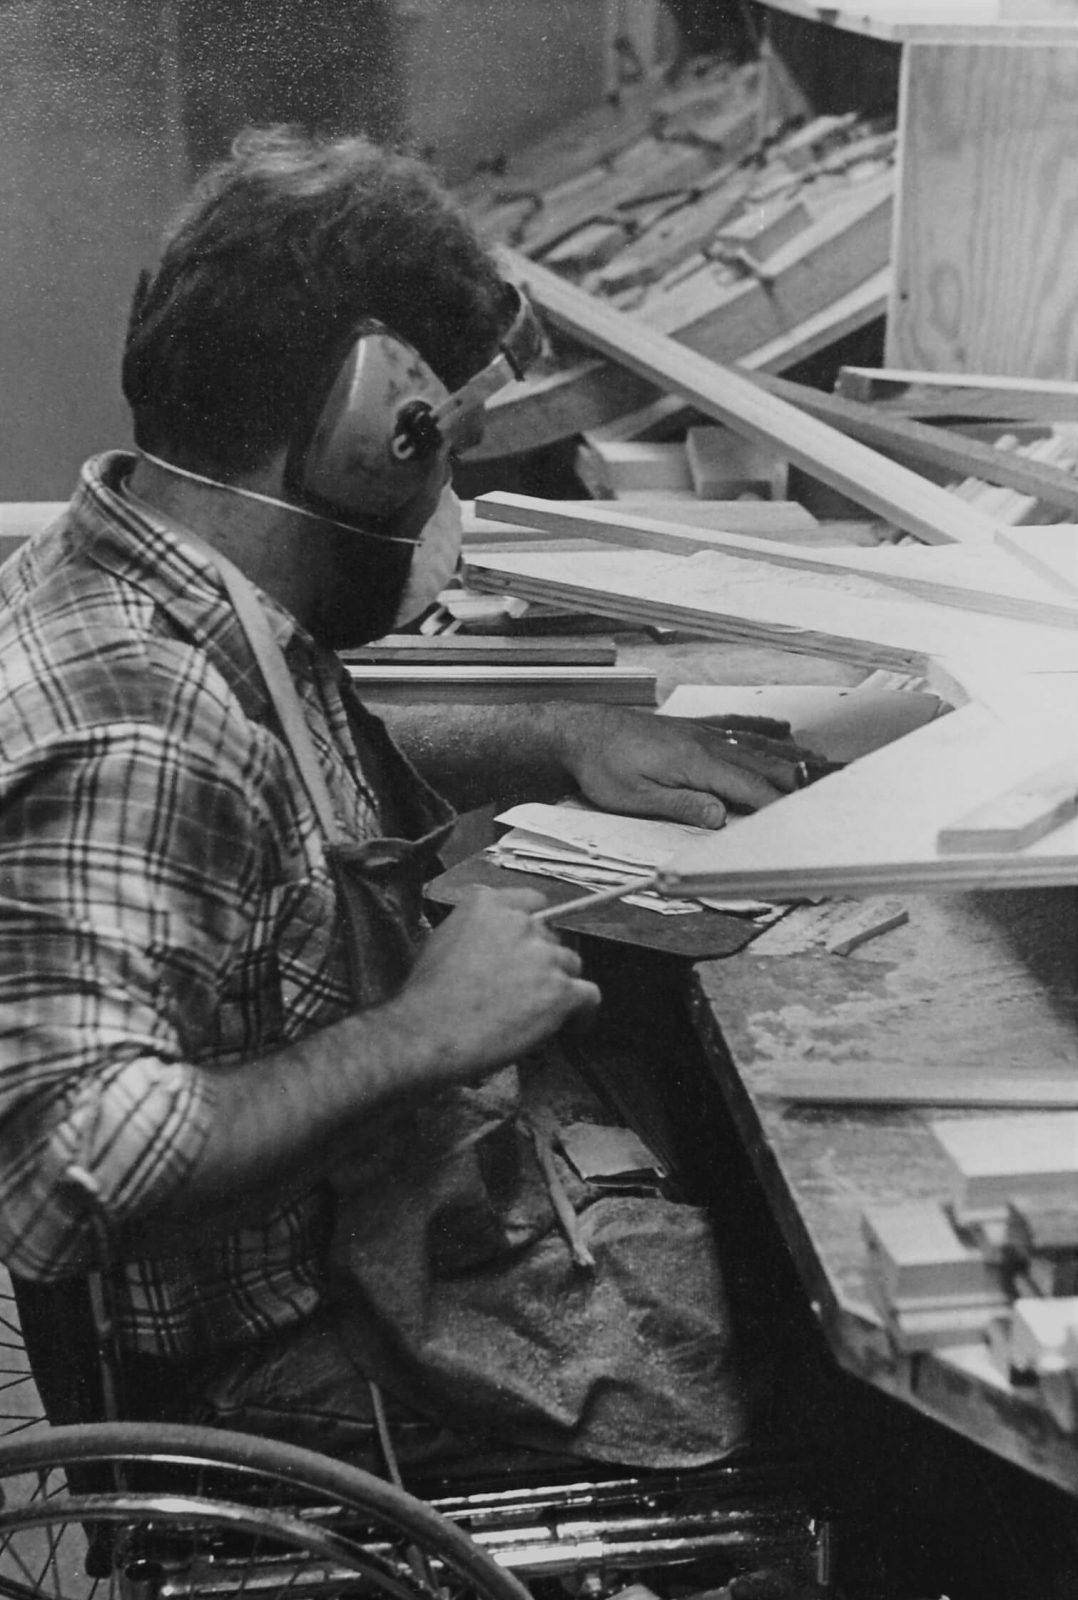 A young Ed Rider, wearing a dust mask and goggles, working on building a wooden frame.